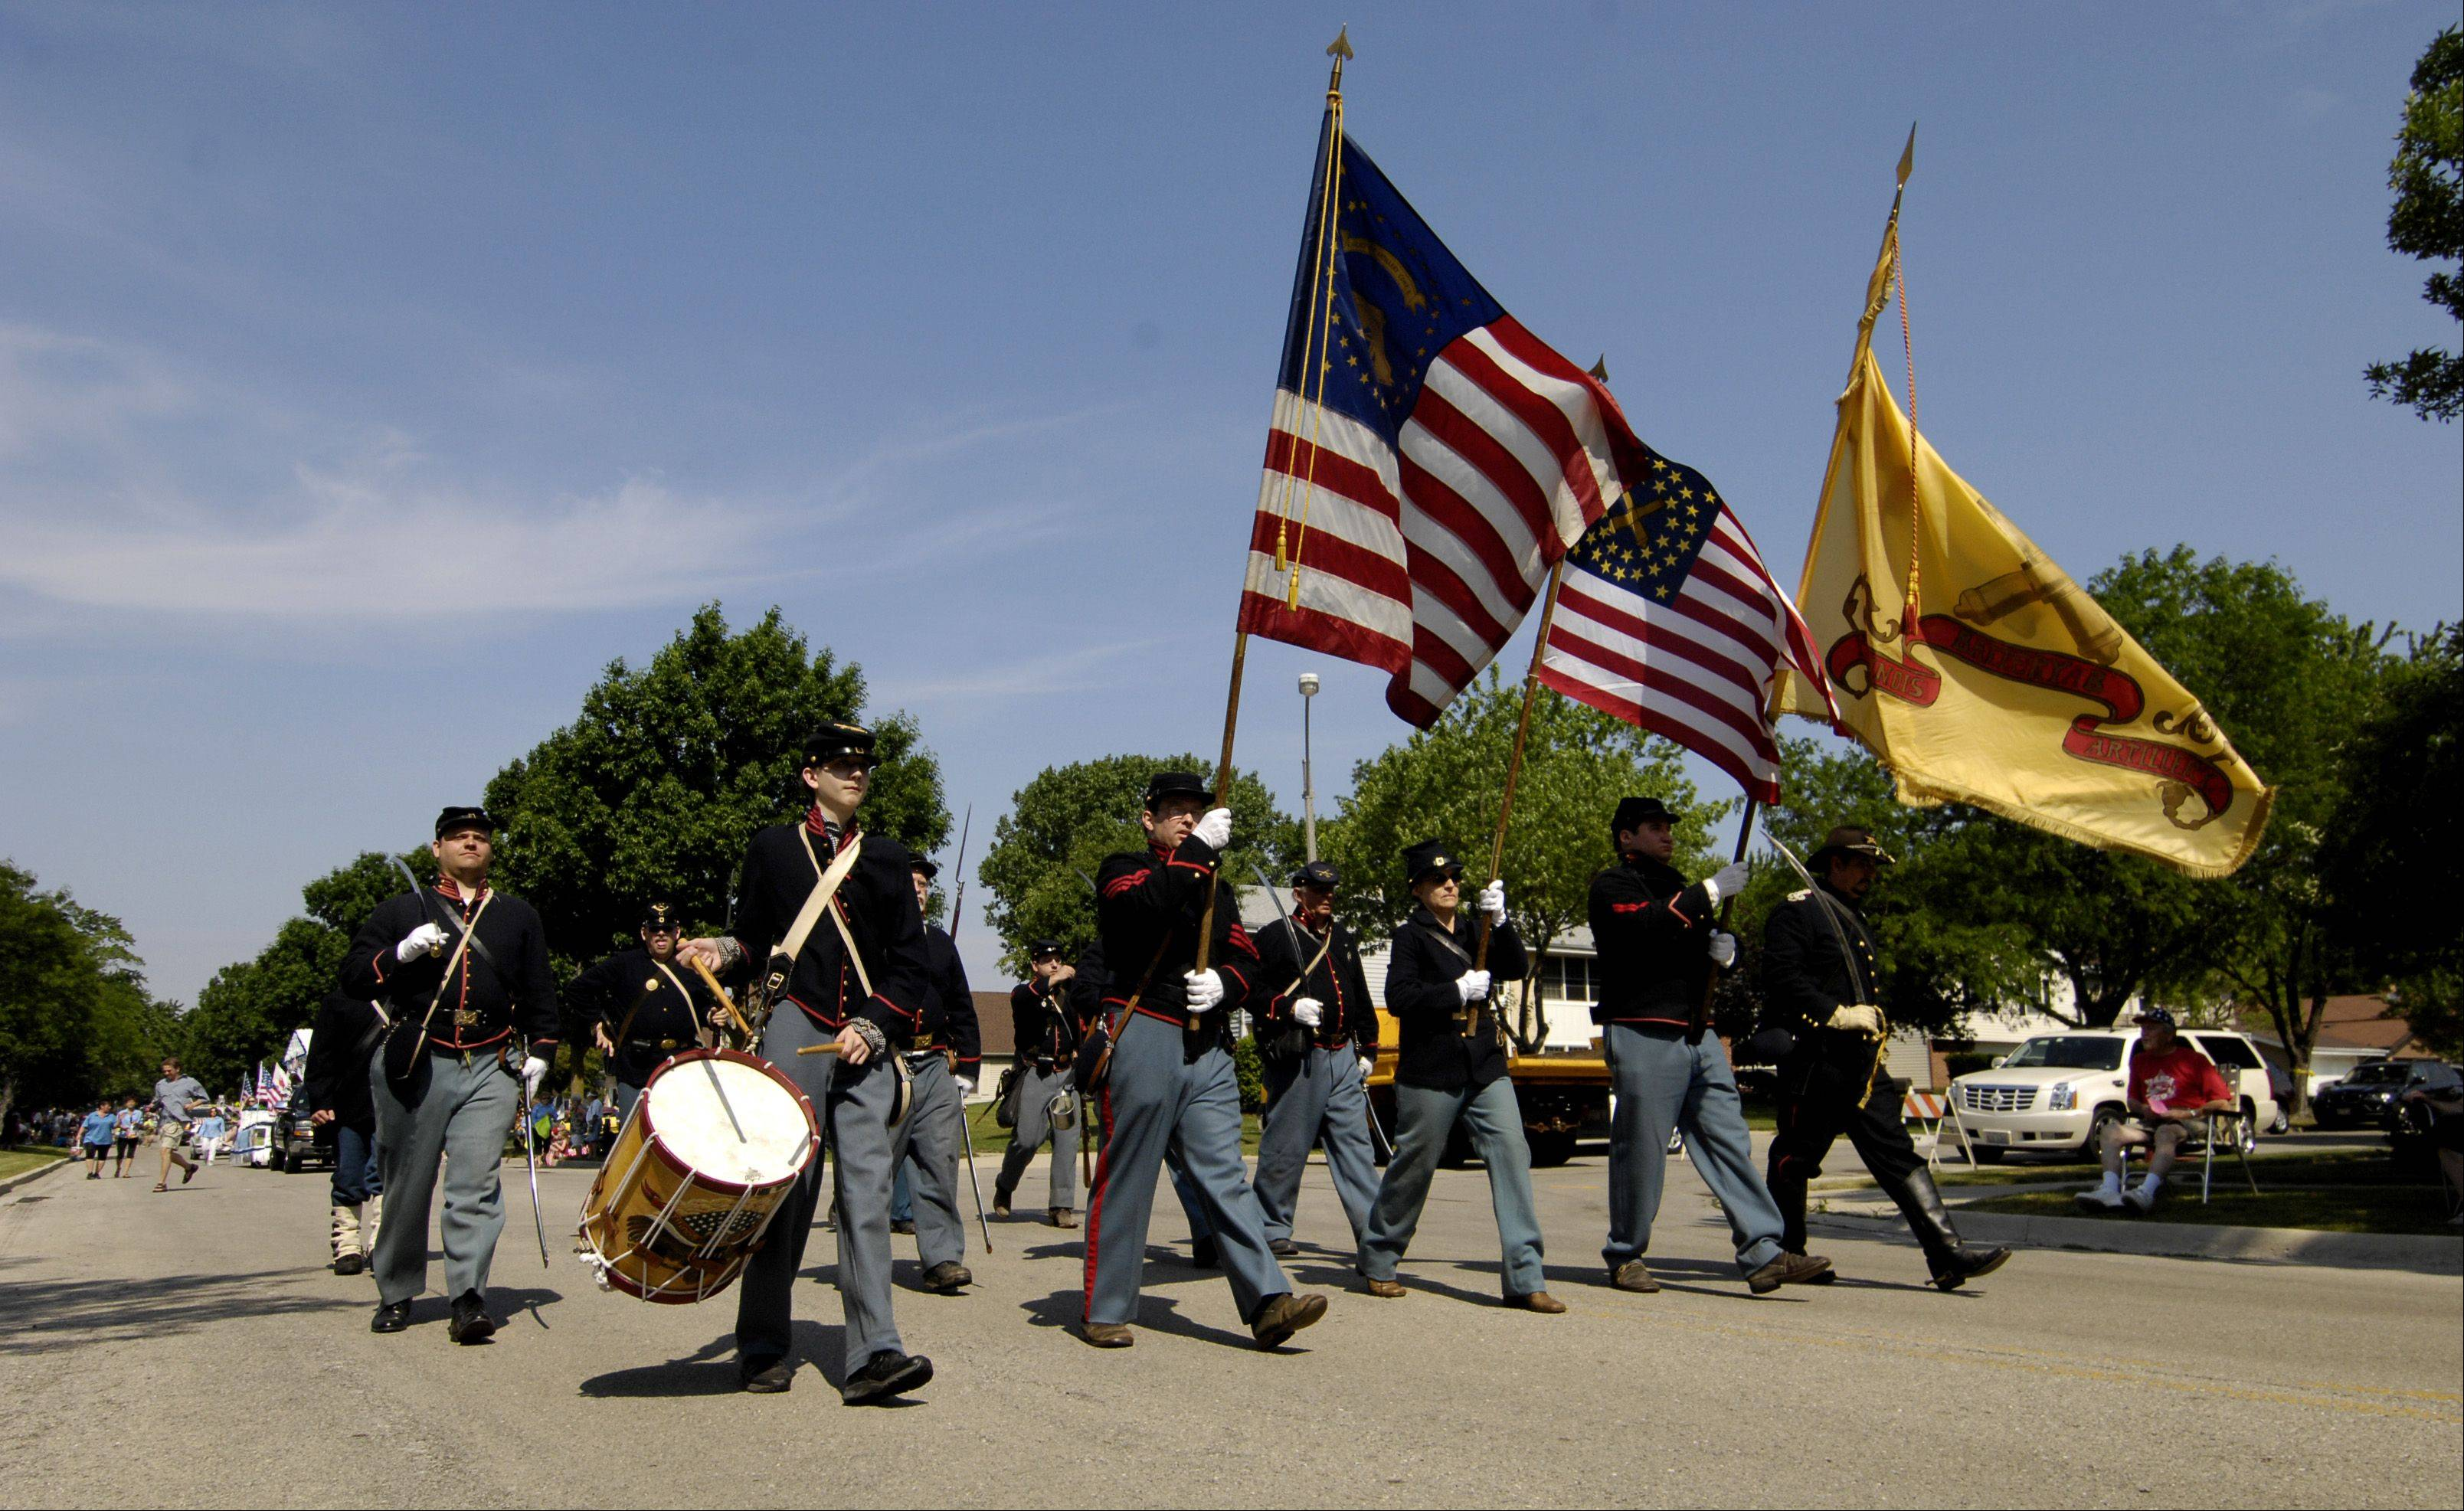 Members of the Civil War era Taylor's Battery B march in the Itasca Memorial Day parade on Monday.